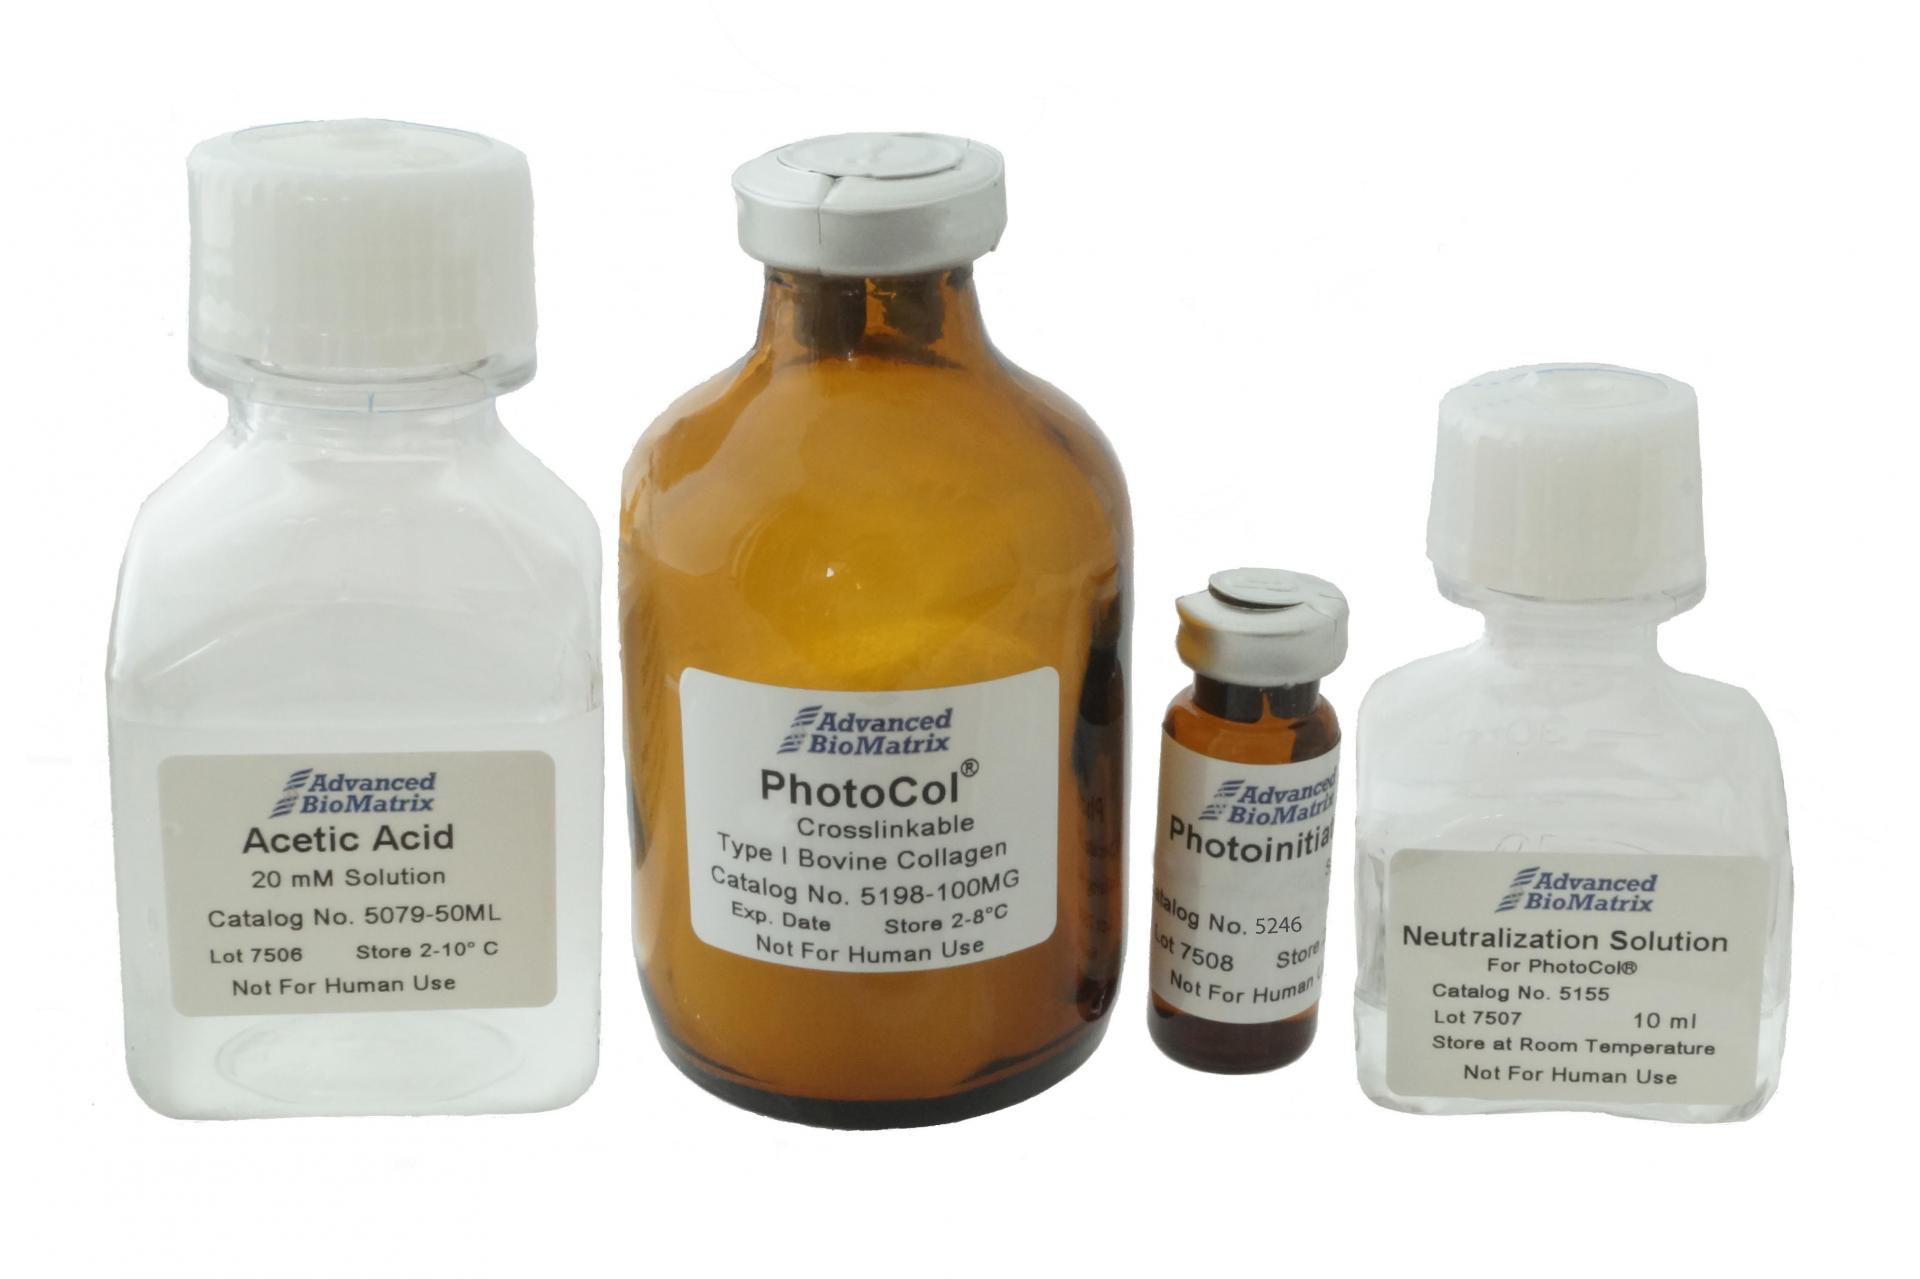 PhotoCol®-IRG Kit #5201